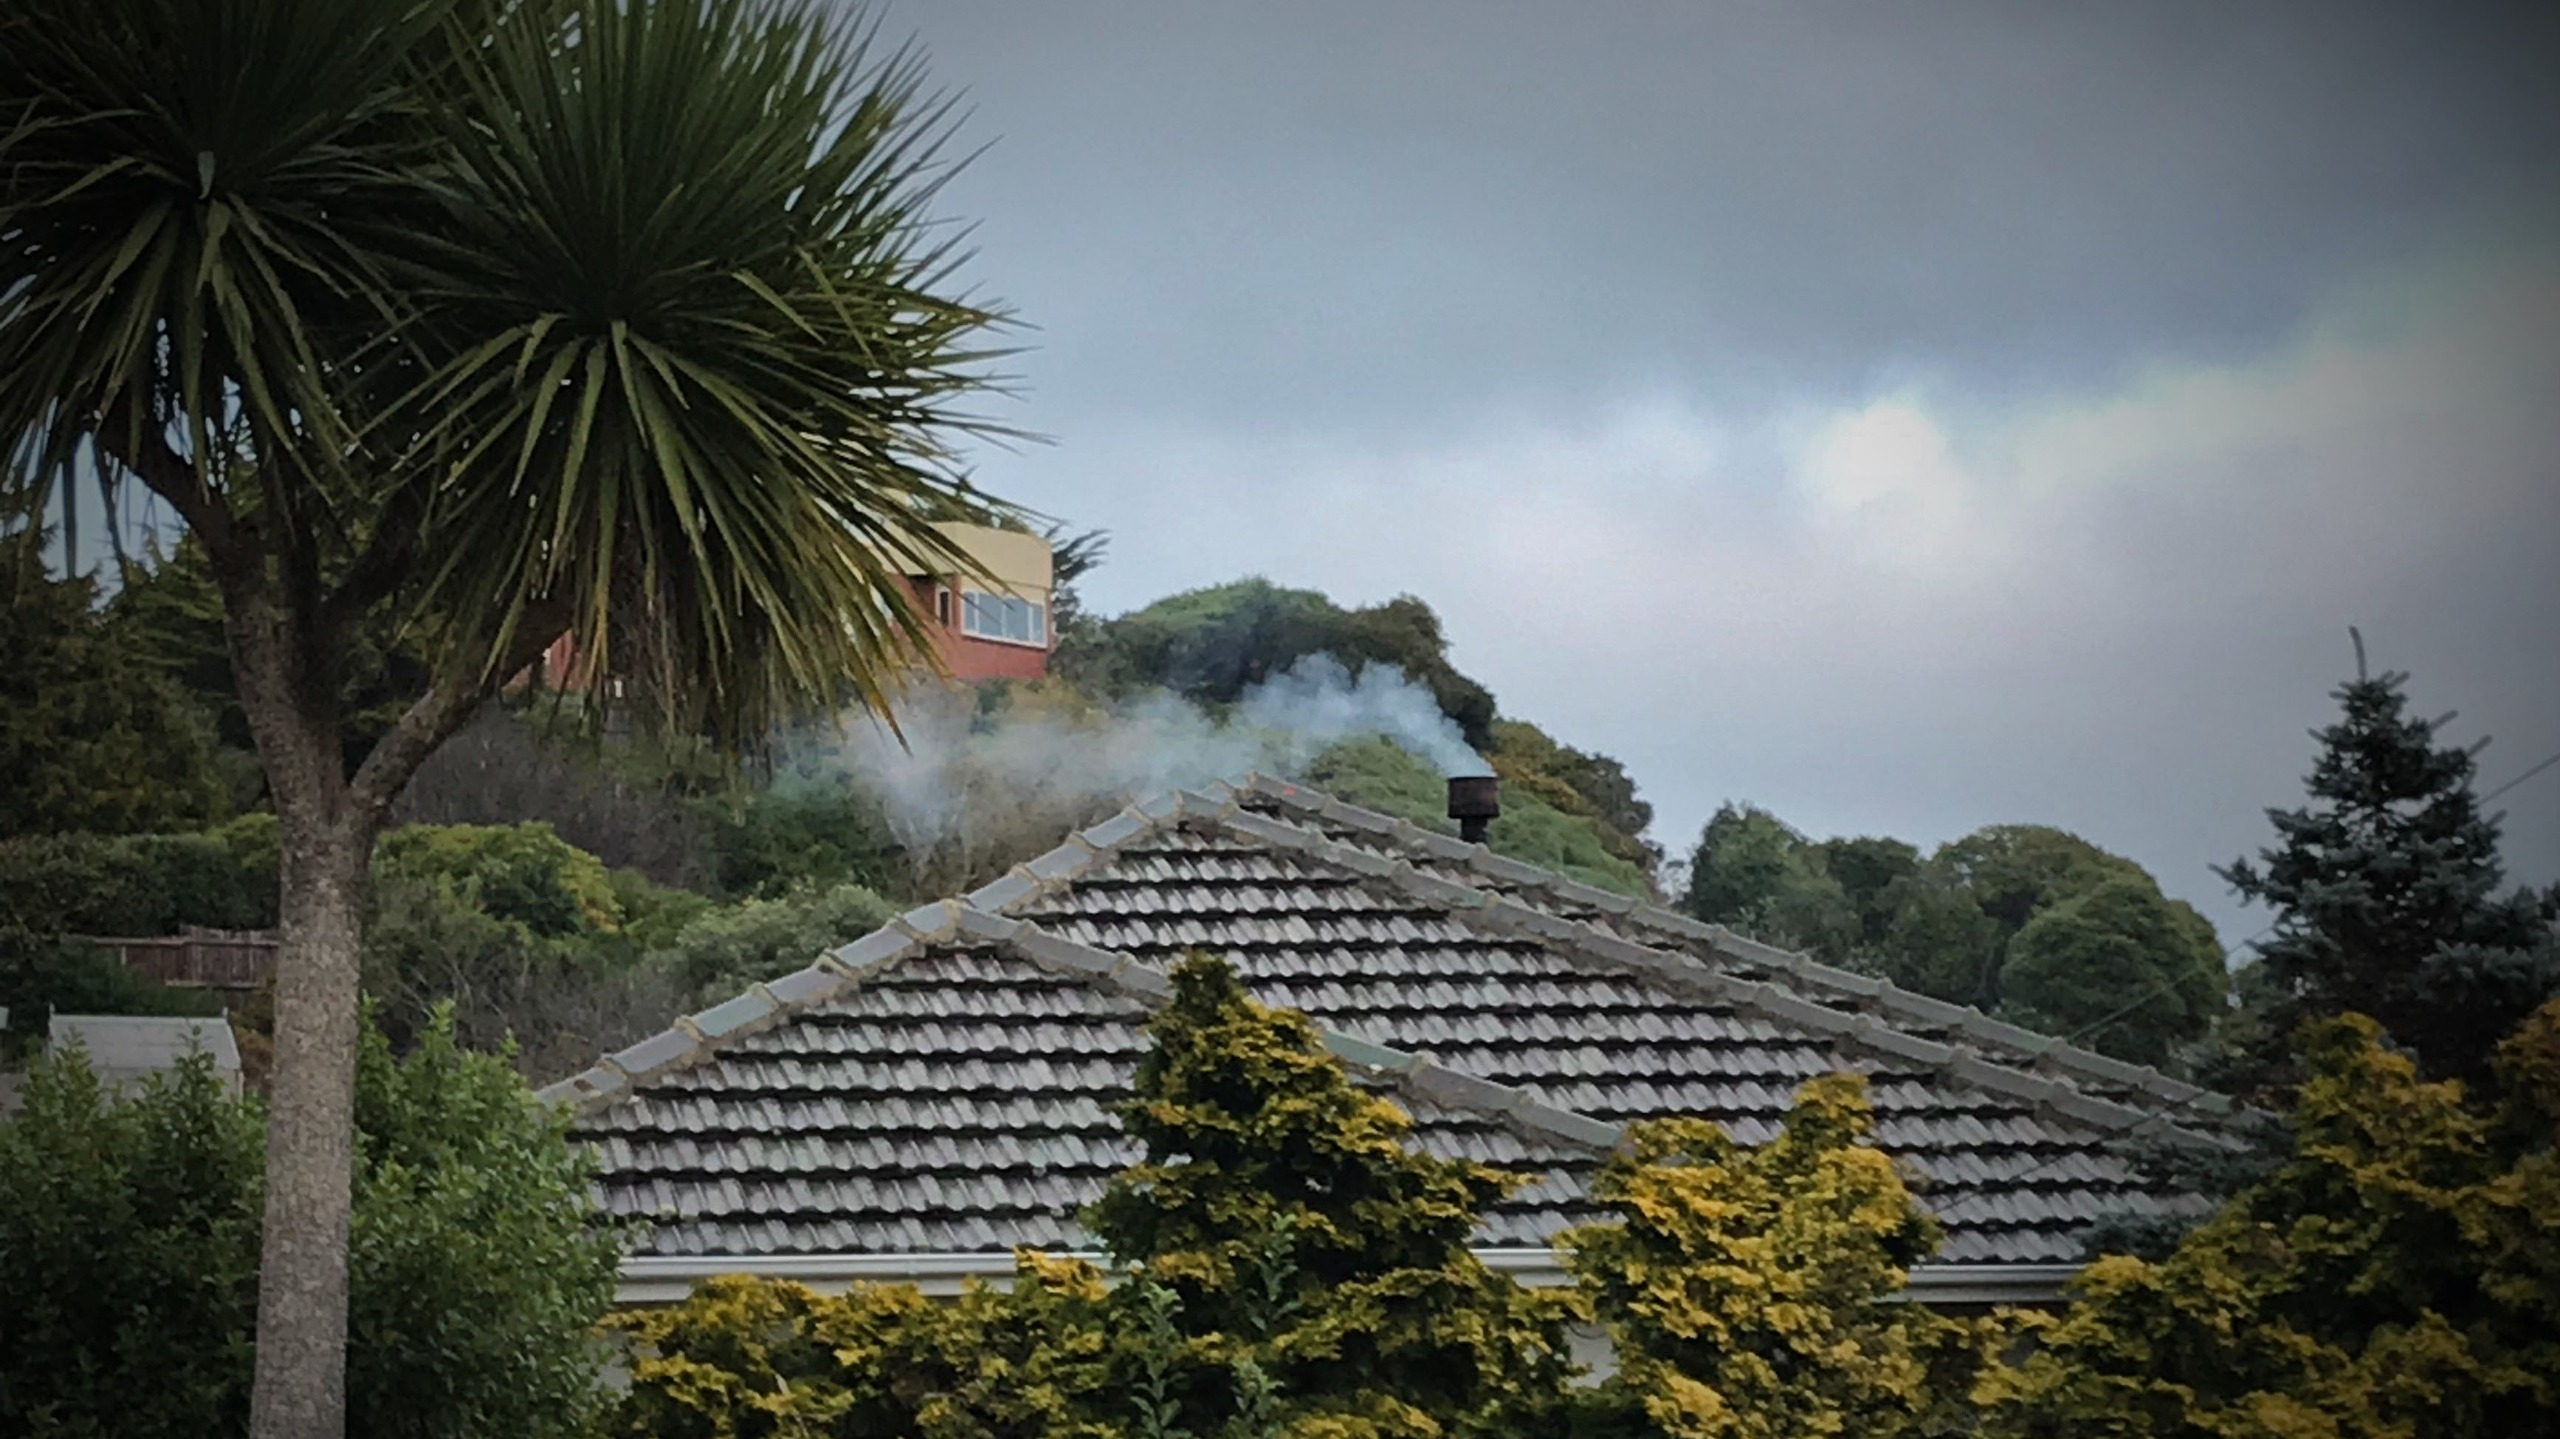 Roof view of a home with fire burning and smoke coming out of the chimney